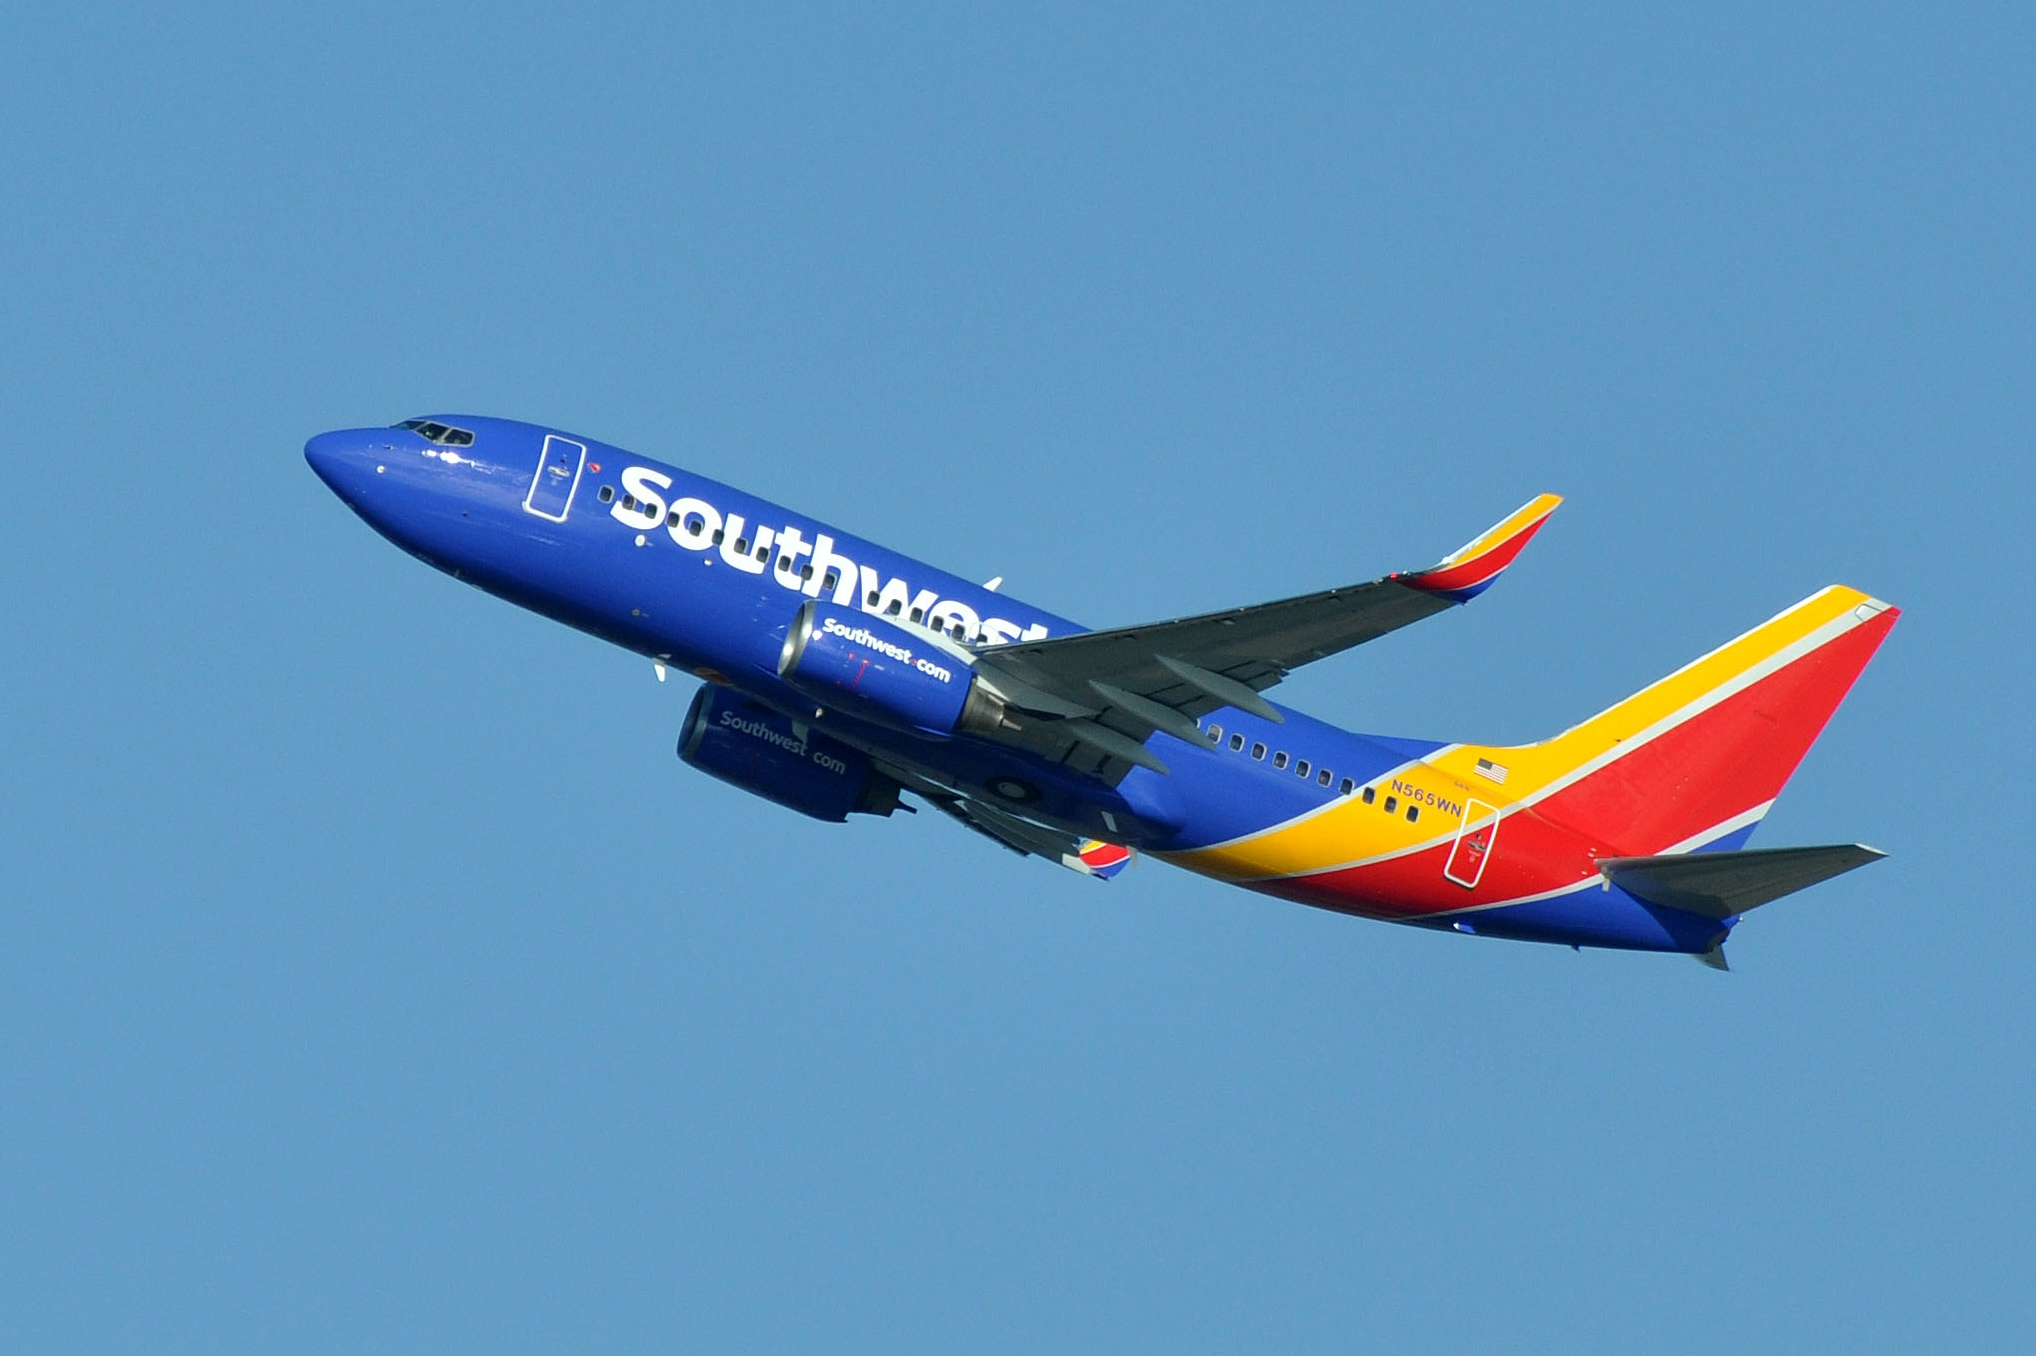 Southwest: We're low-cost, not no-frills